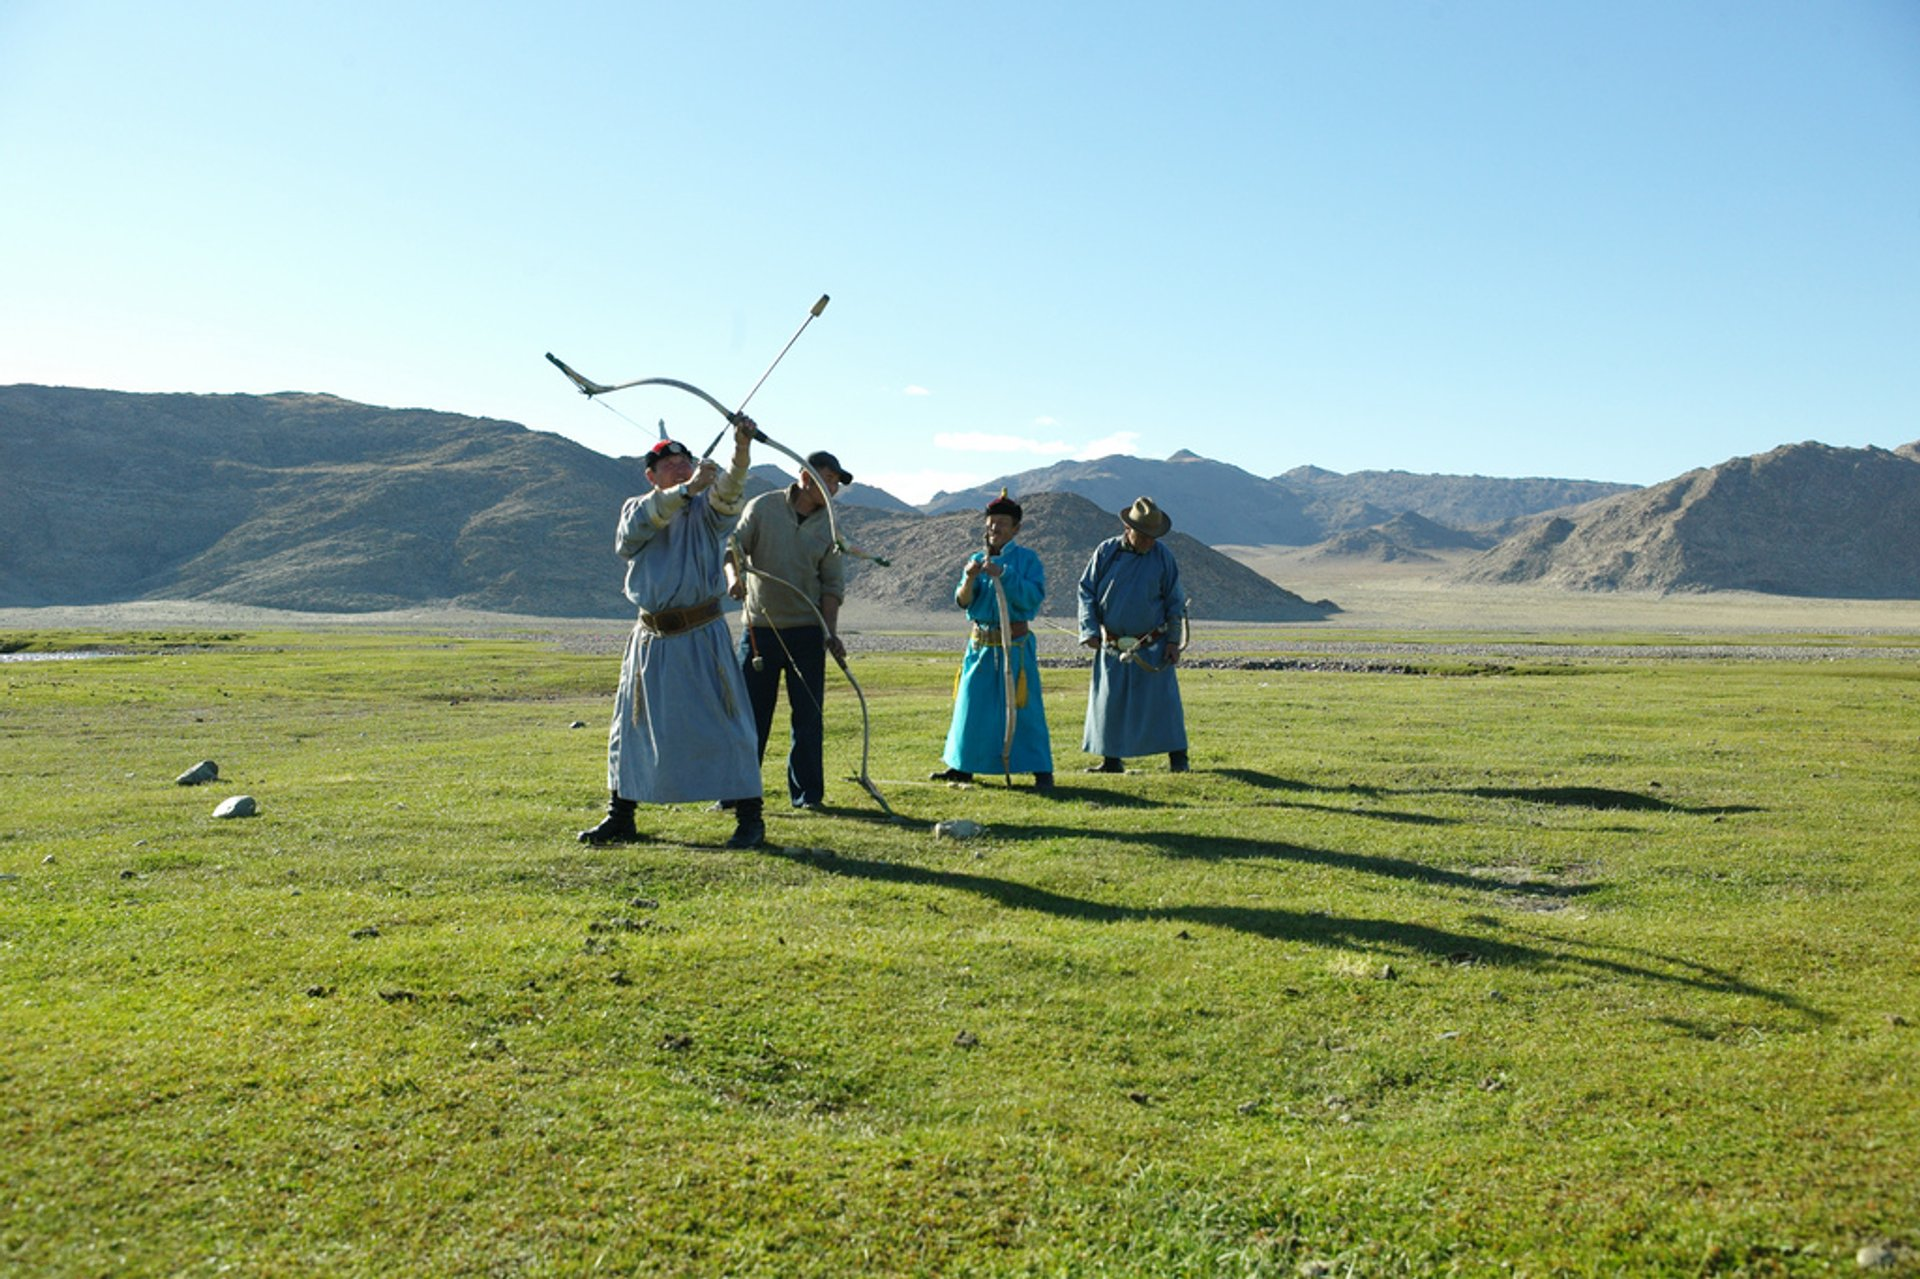 Archery in Mongolia - Best Season 2020